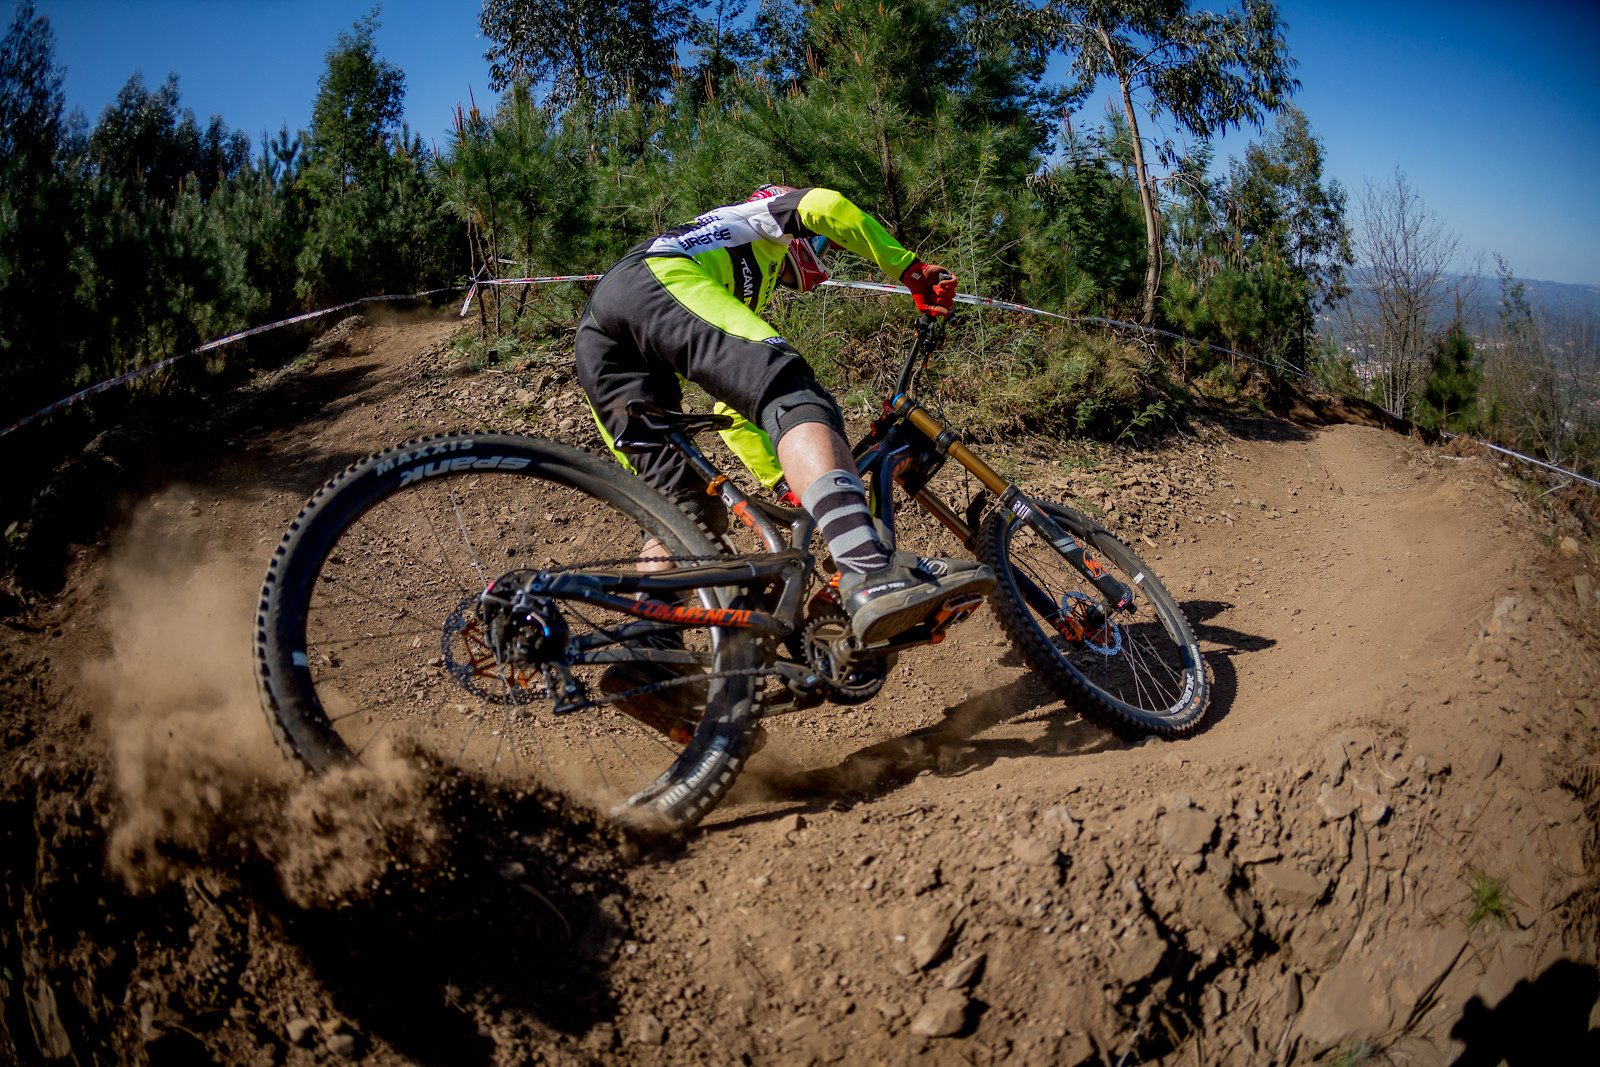 Francisco Sousa - miguelbento - Mountain Biking Pictures - Vital MTB